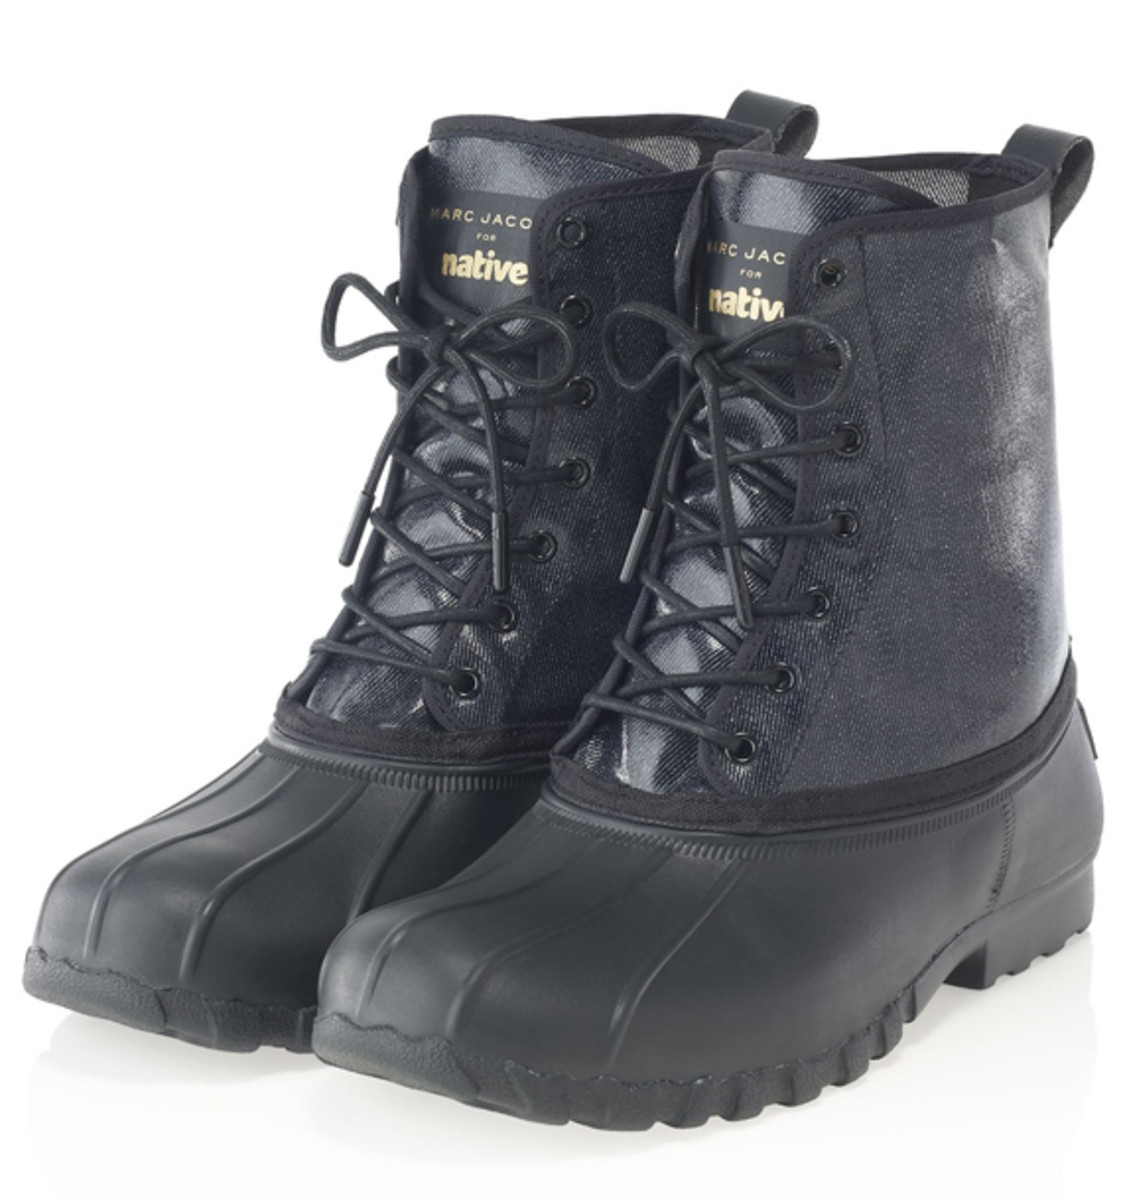 marc-jaobs-native-jimmy-boots-available-03